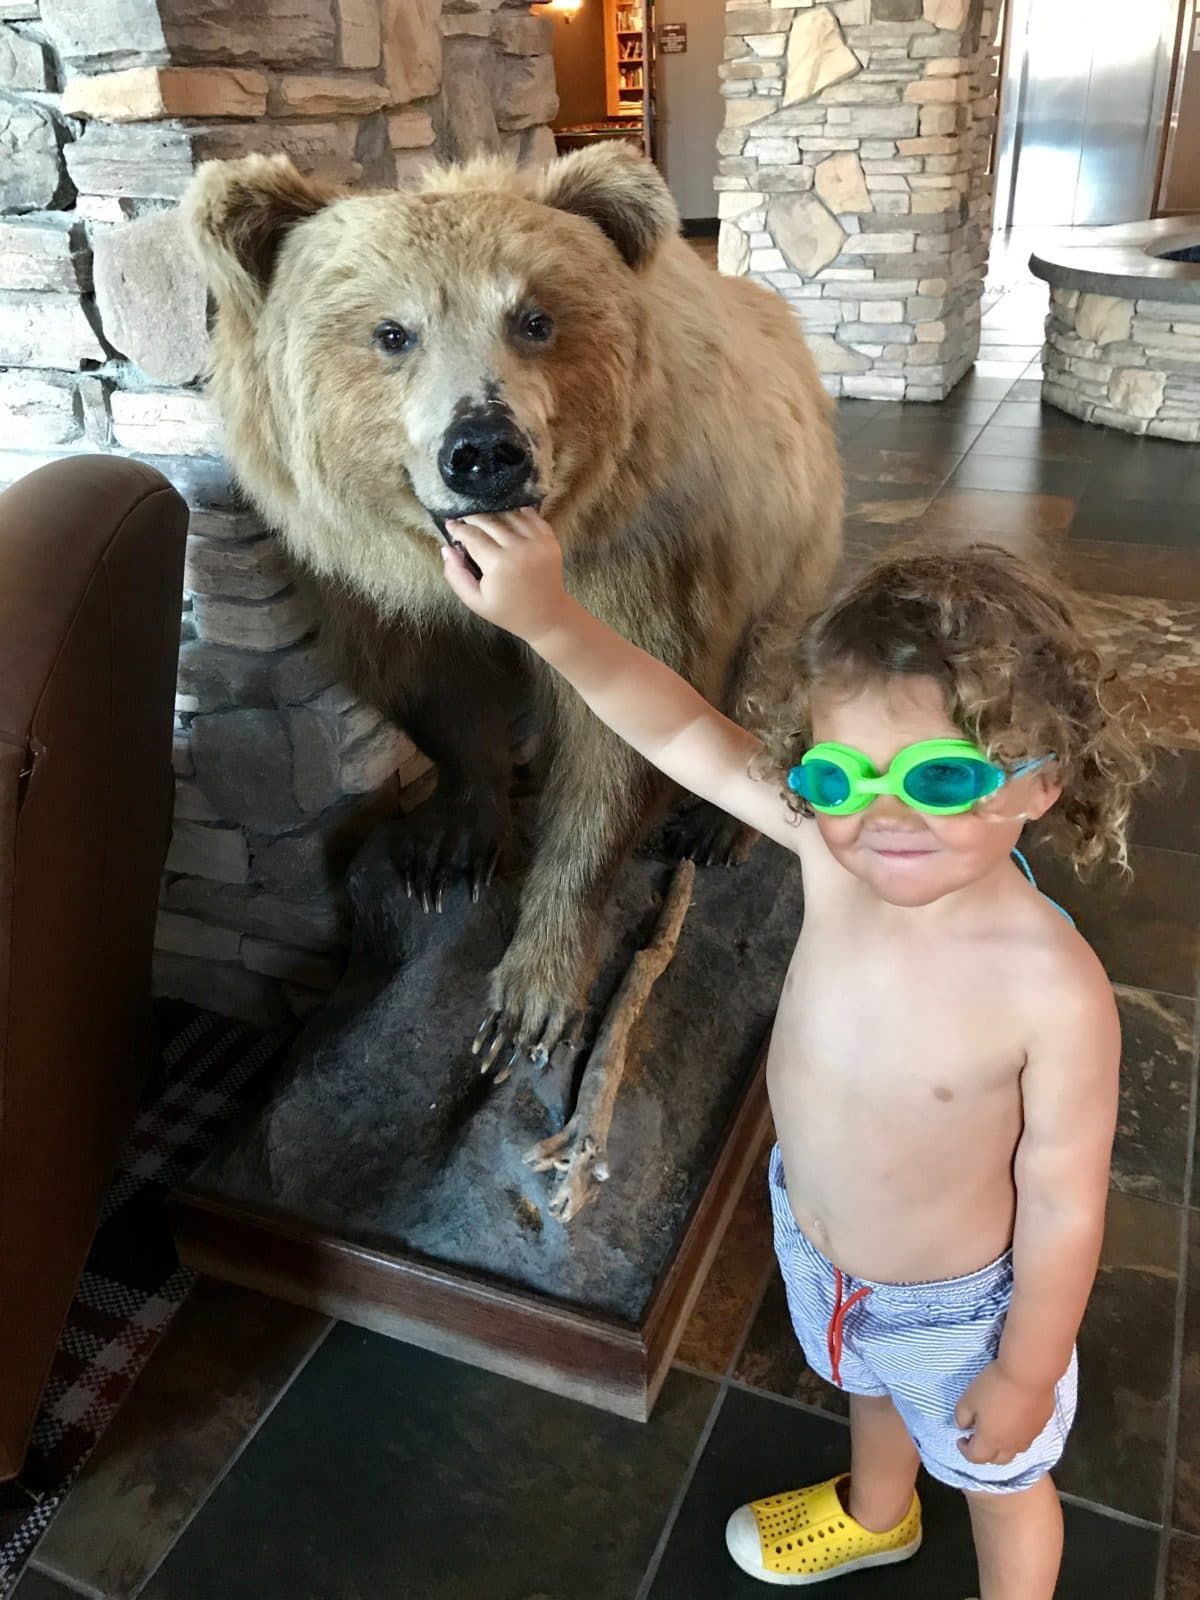 Keegan and the bear